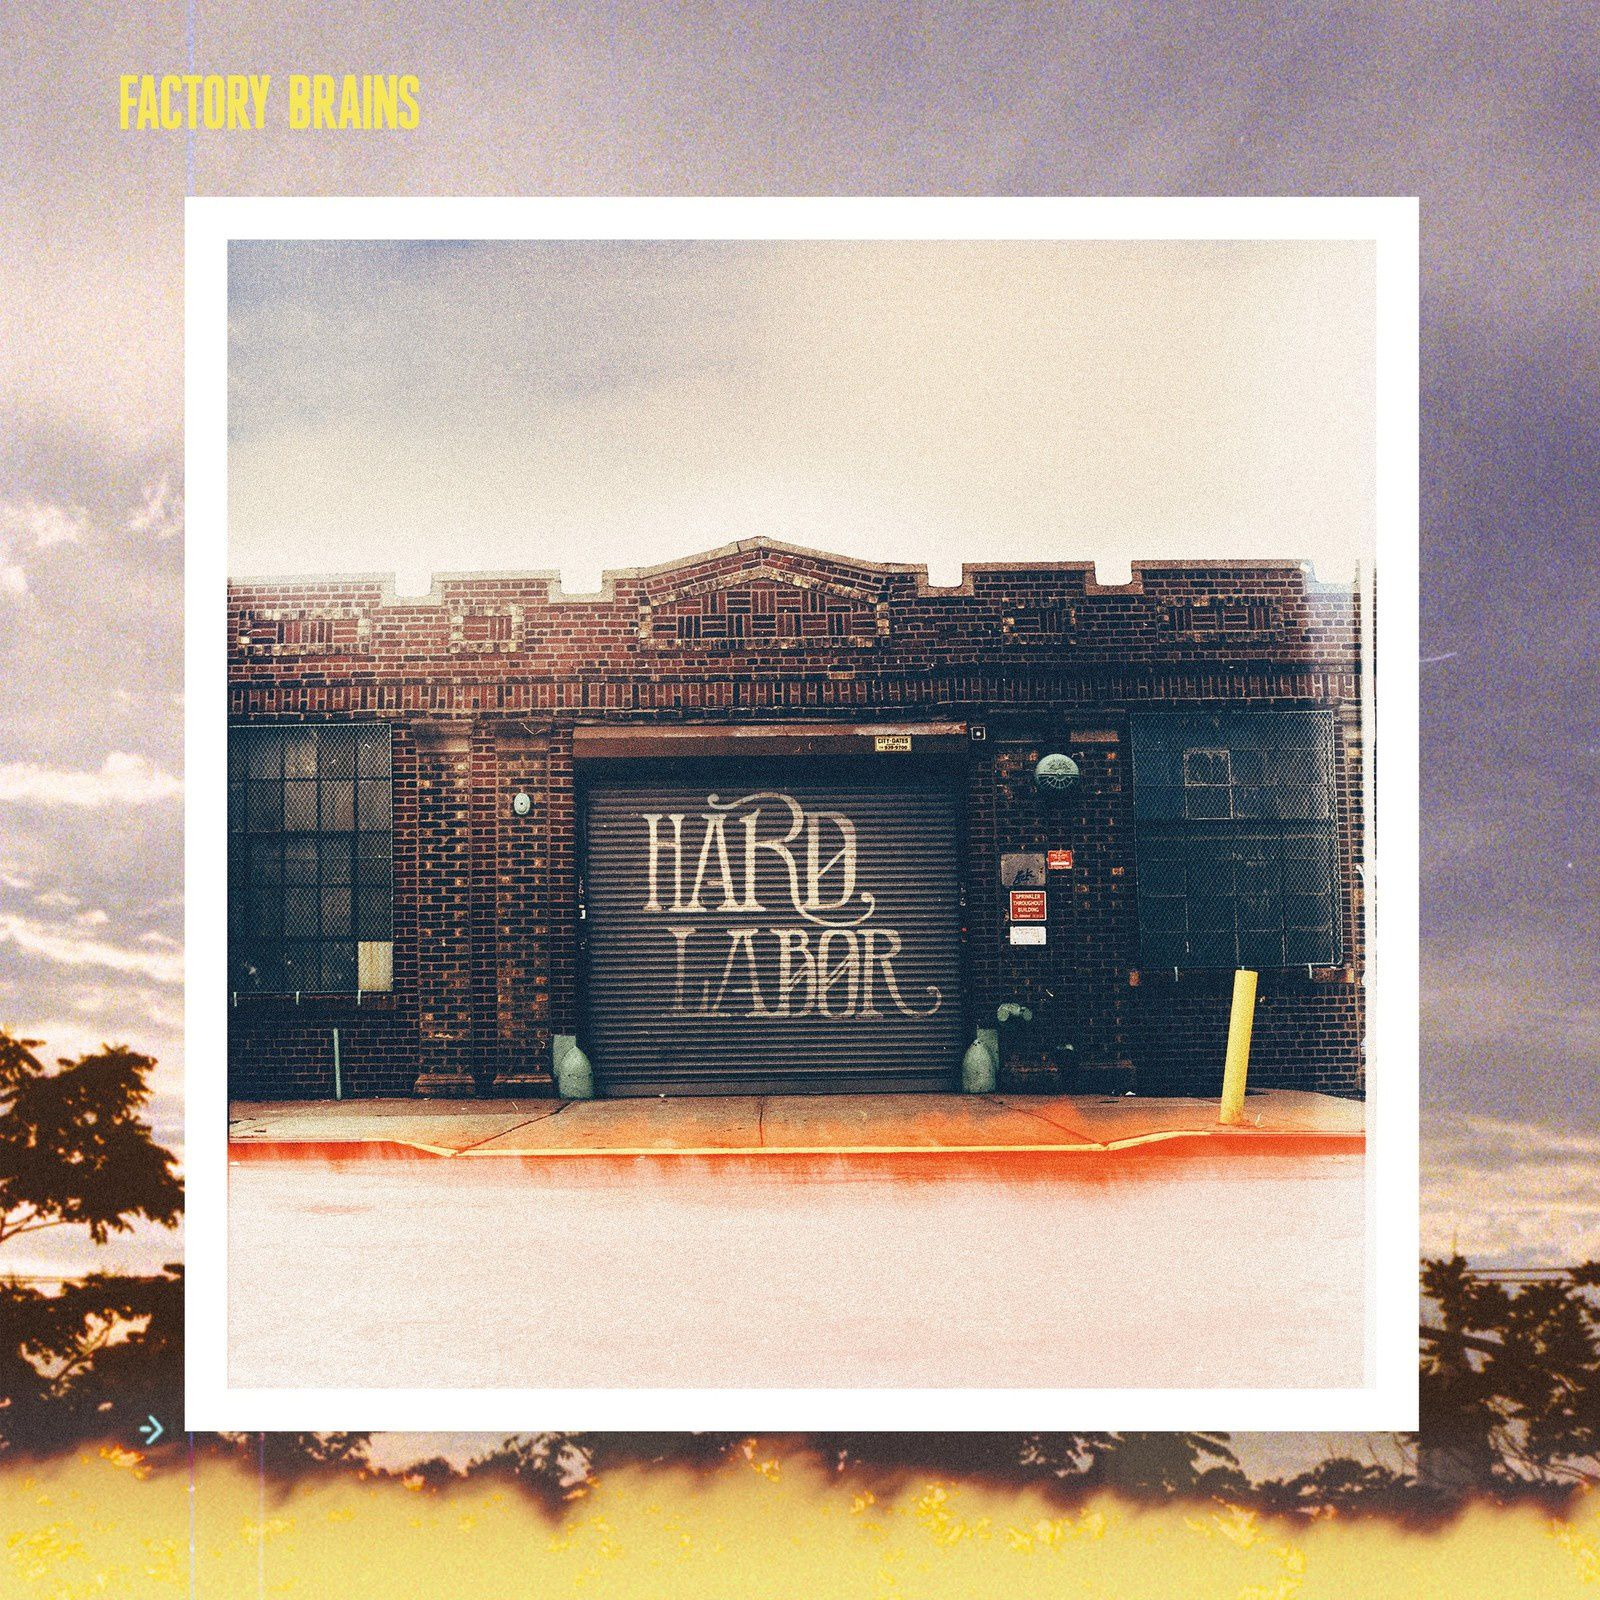 """CD review FACTORY BRAINS """"Hard Labor"""""""